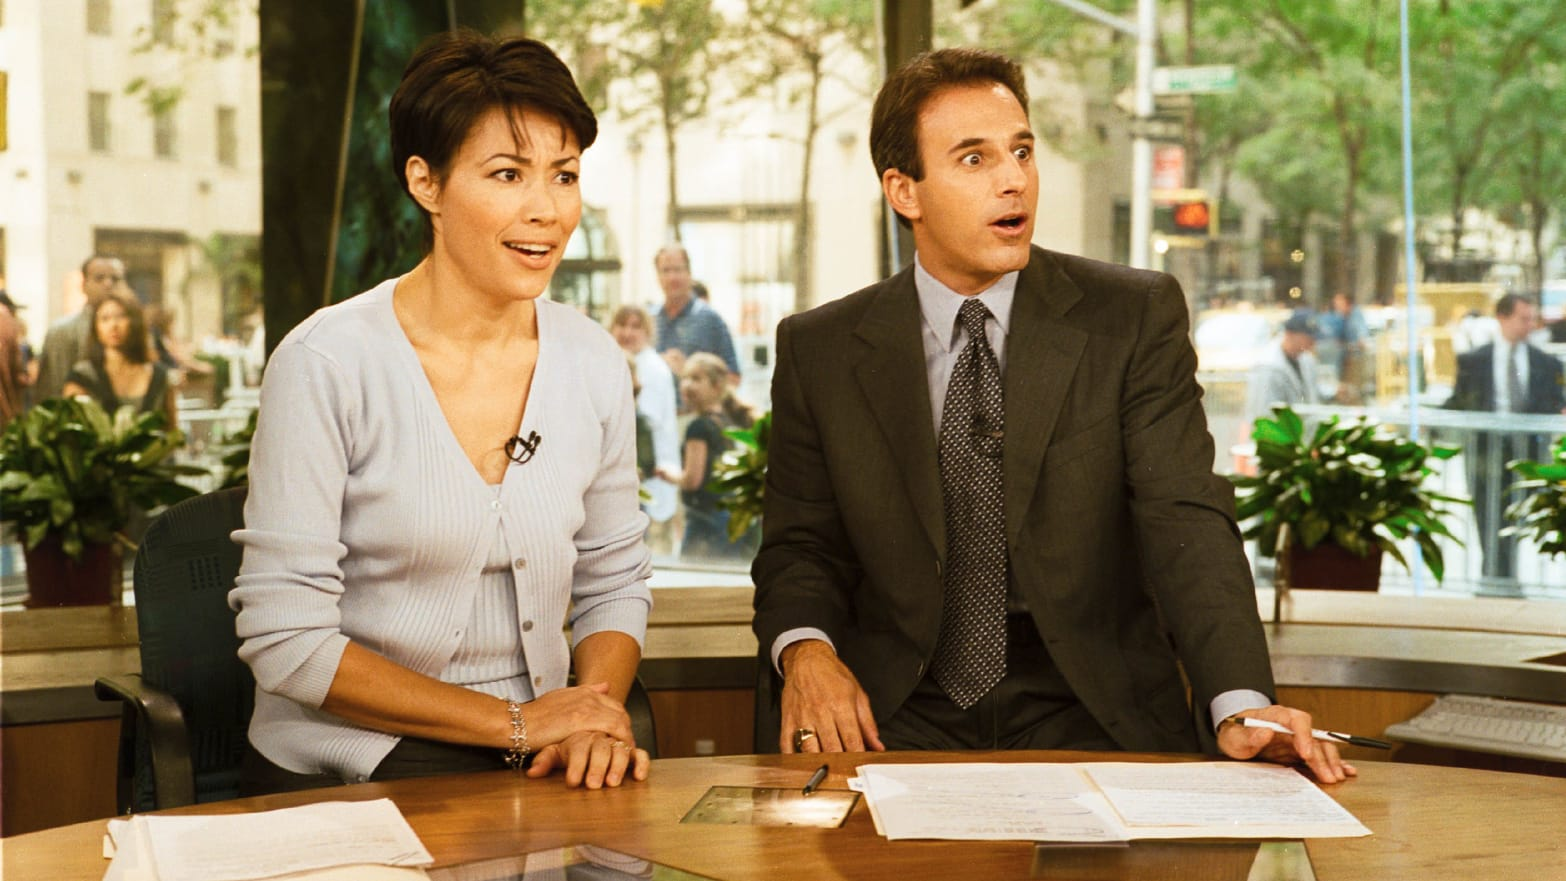 NBC Producers Told to Omit Matt Lauer and Ann Curry From 'Today' Show Studio Tribute, Sources Say